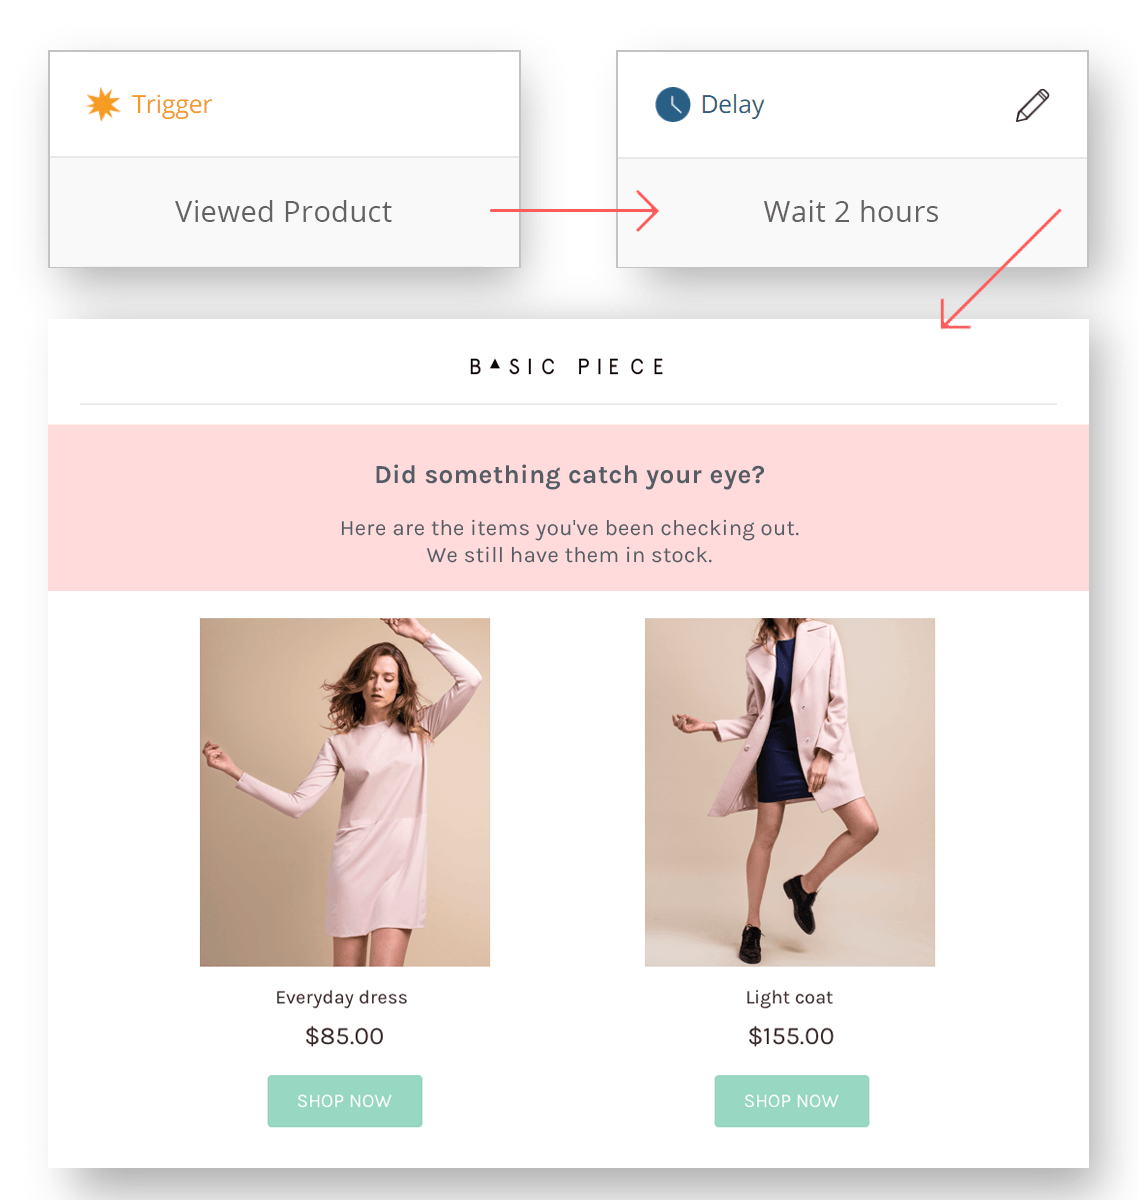 Product Abandonment automated emails go out to any known visitor abandoning a product page